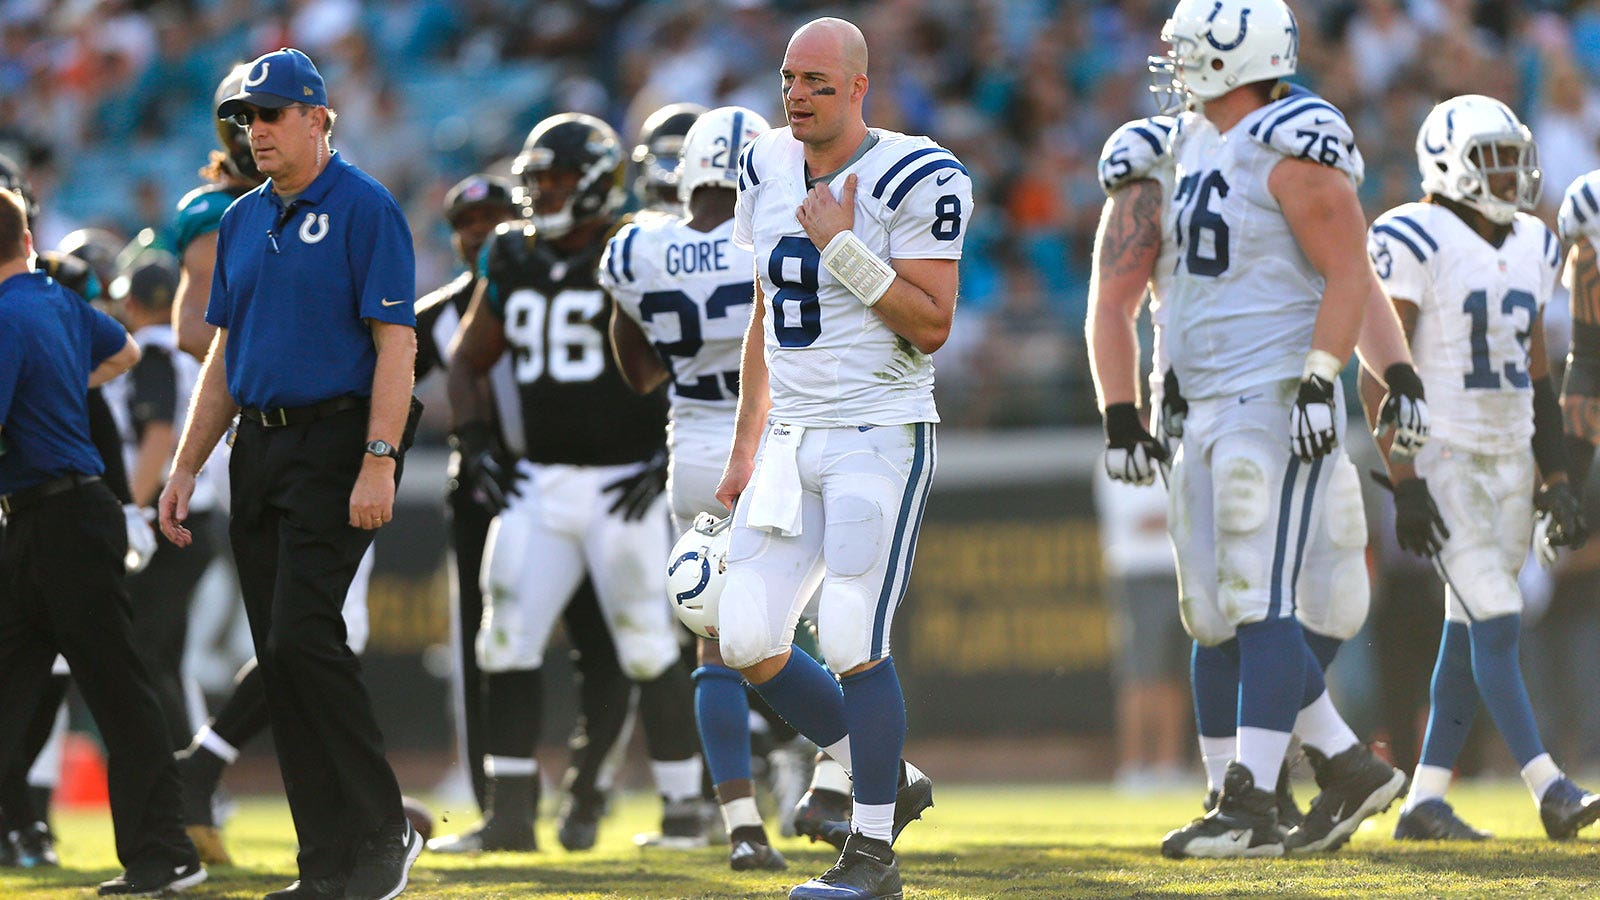 Colts 'fully anticipate' Hasselbeck being able to play